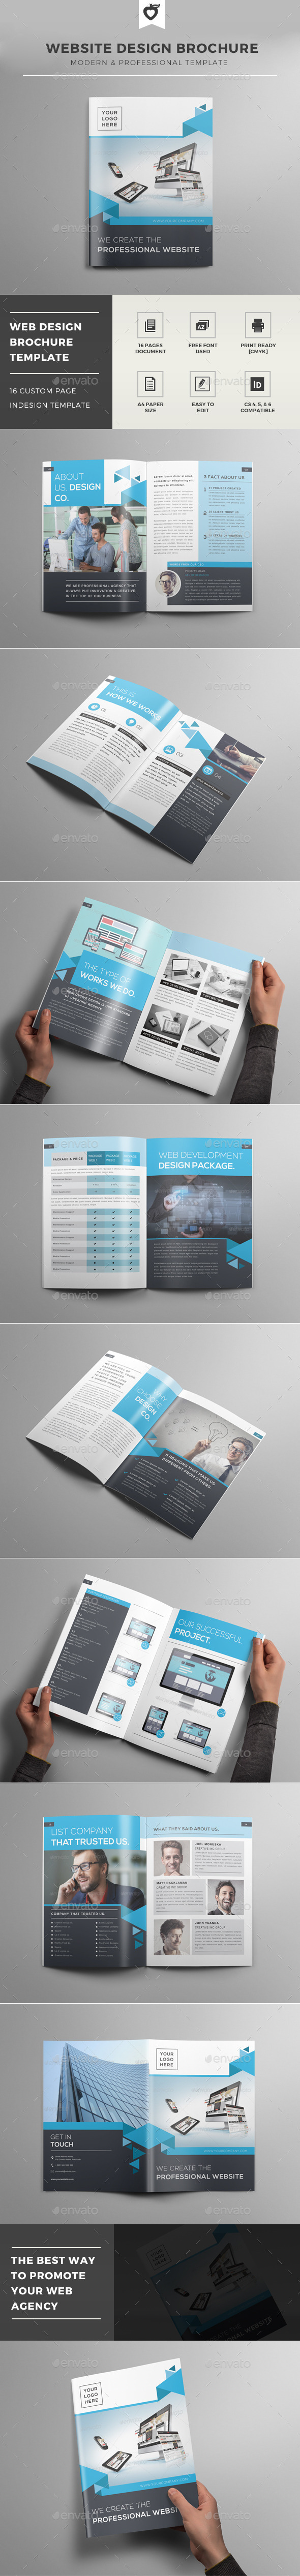 website-design-brochure-template